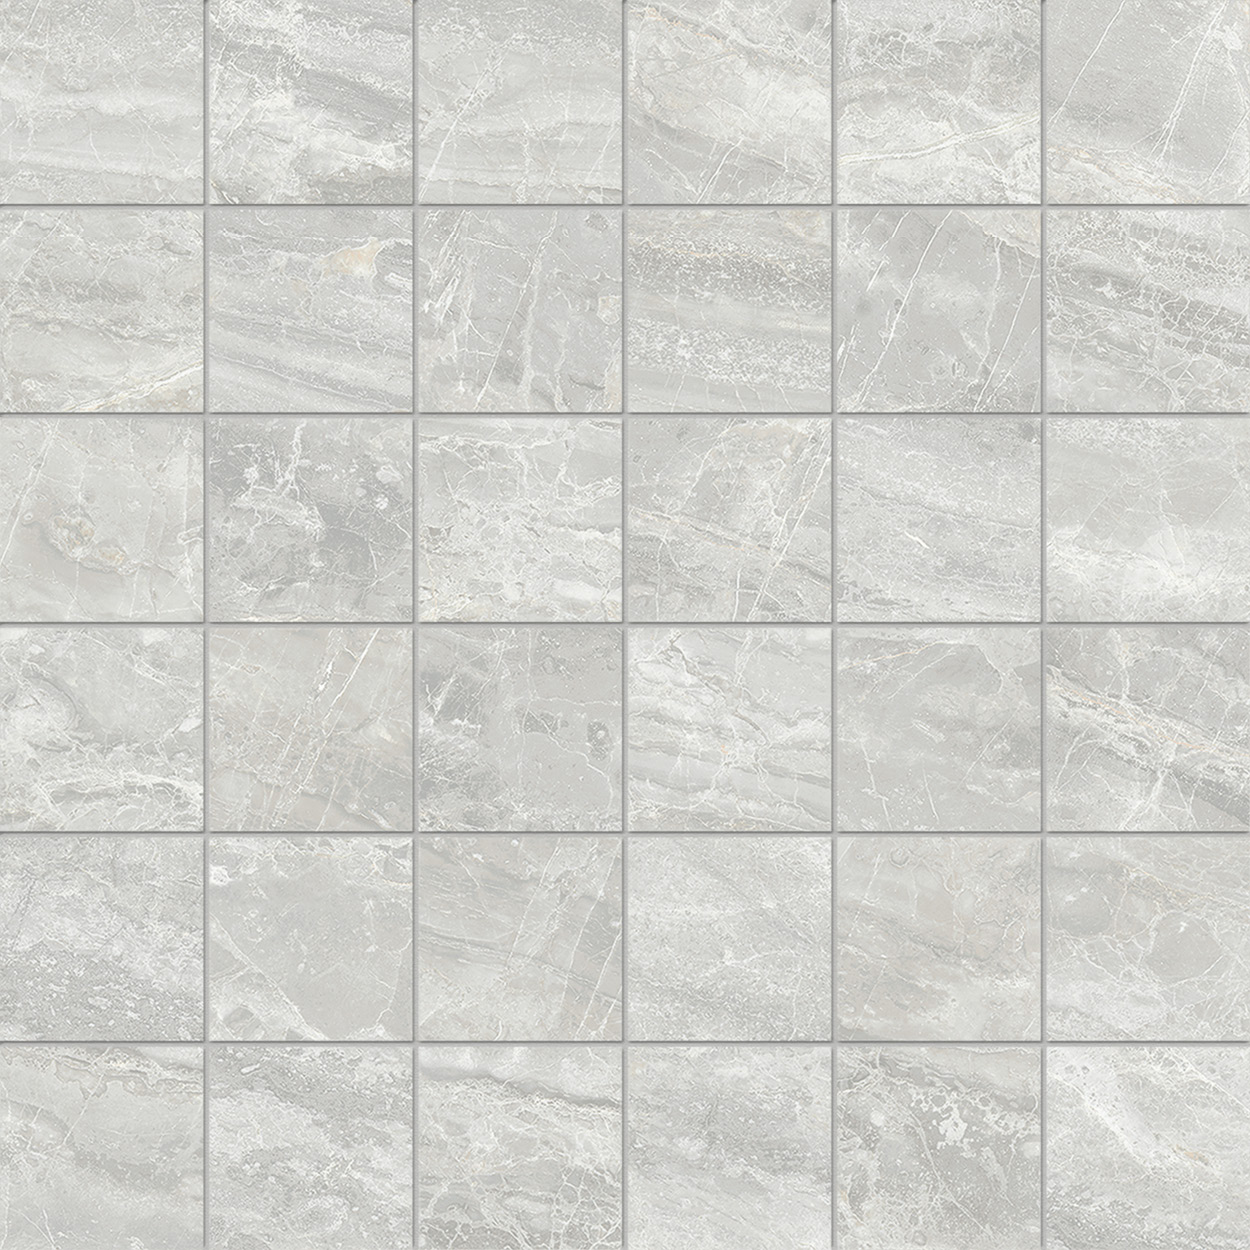 2 x 2 Cosmic Grey POLISHED porcelain mosaic